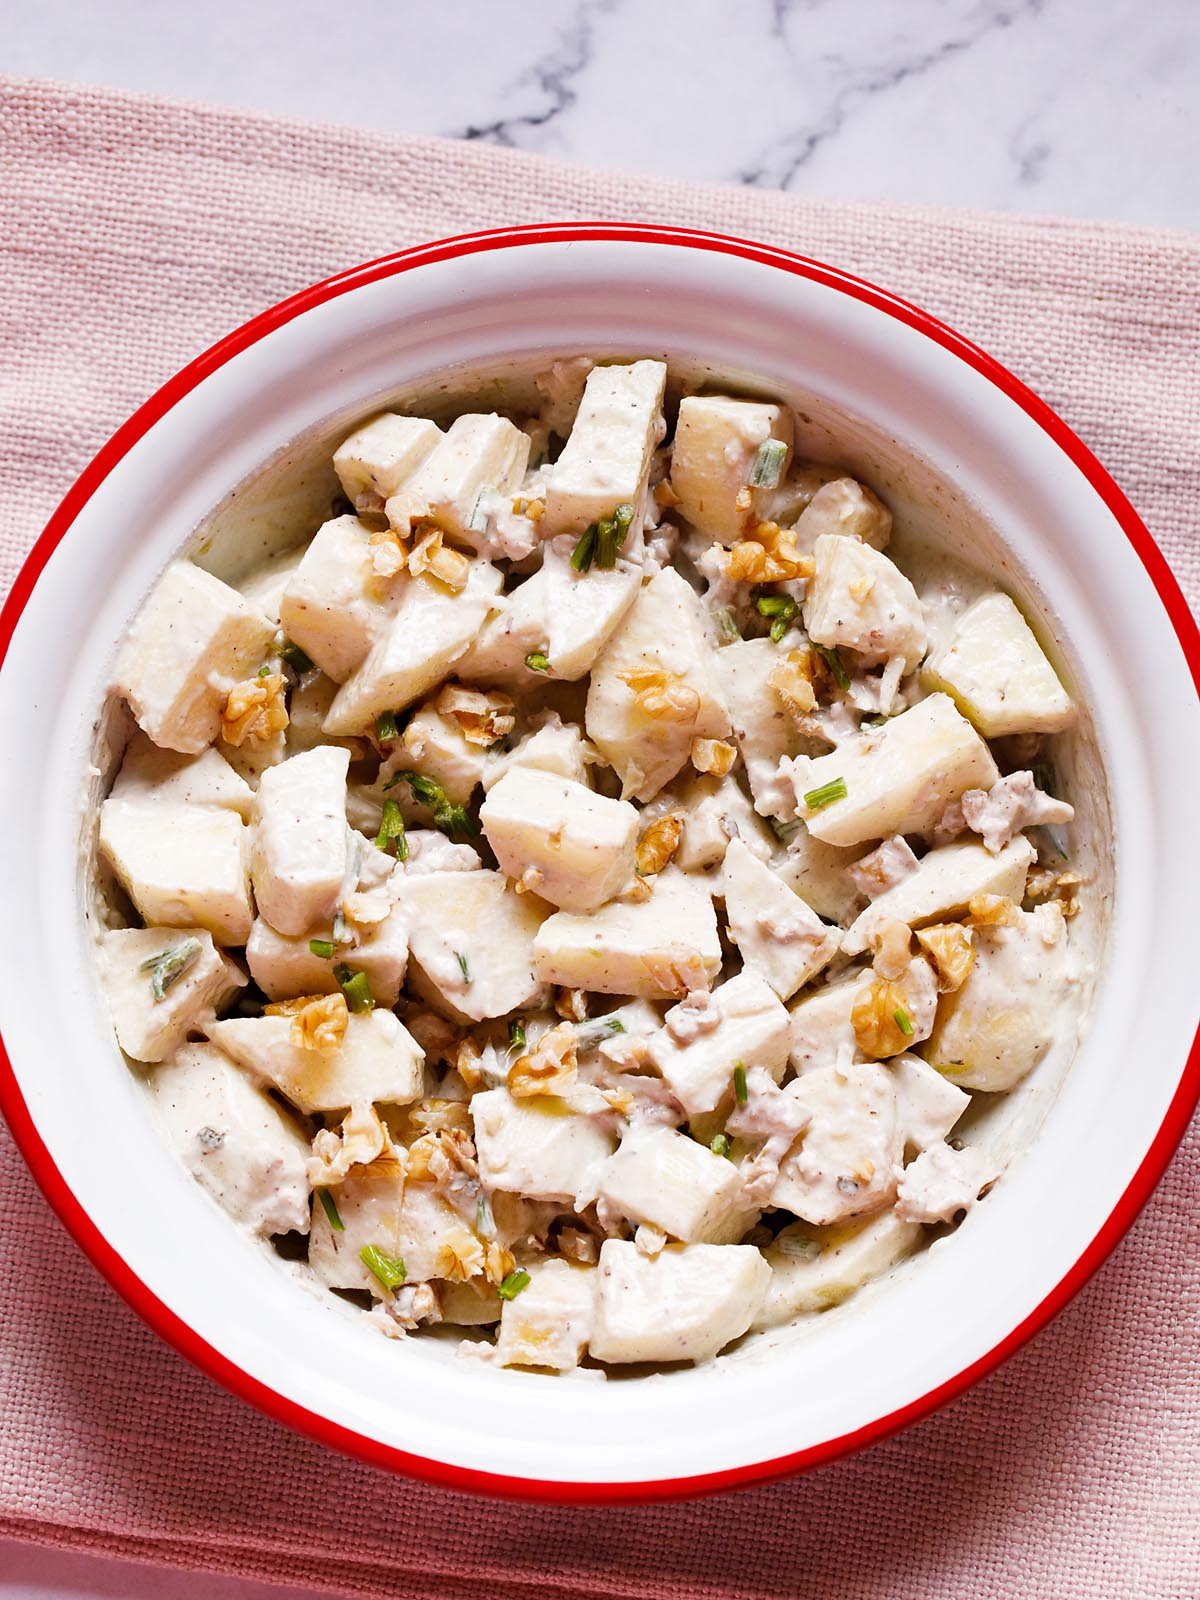 Apple salad with walnuts, celery and mayo dressing in an enamel bowl with white interior and red exterior